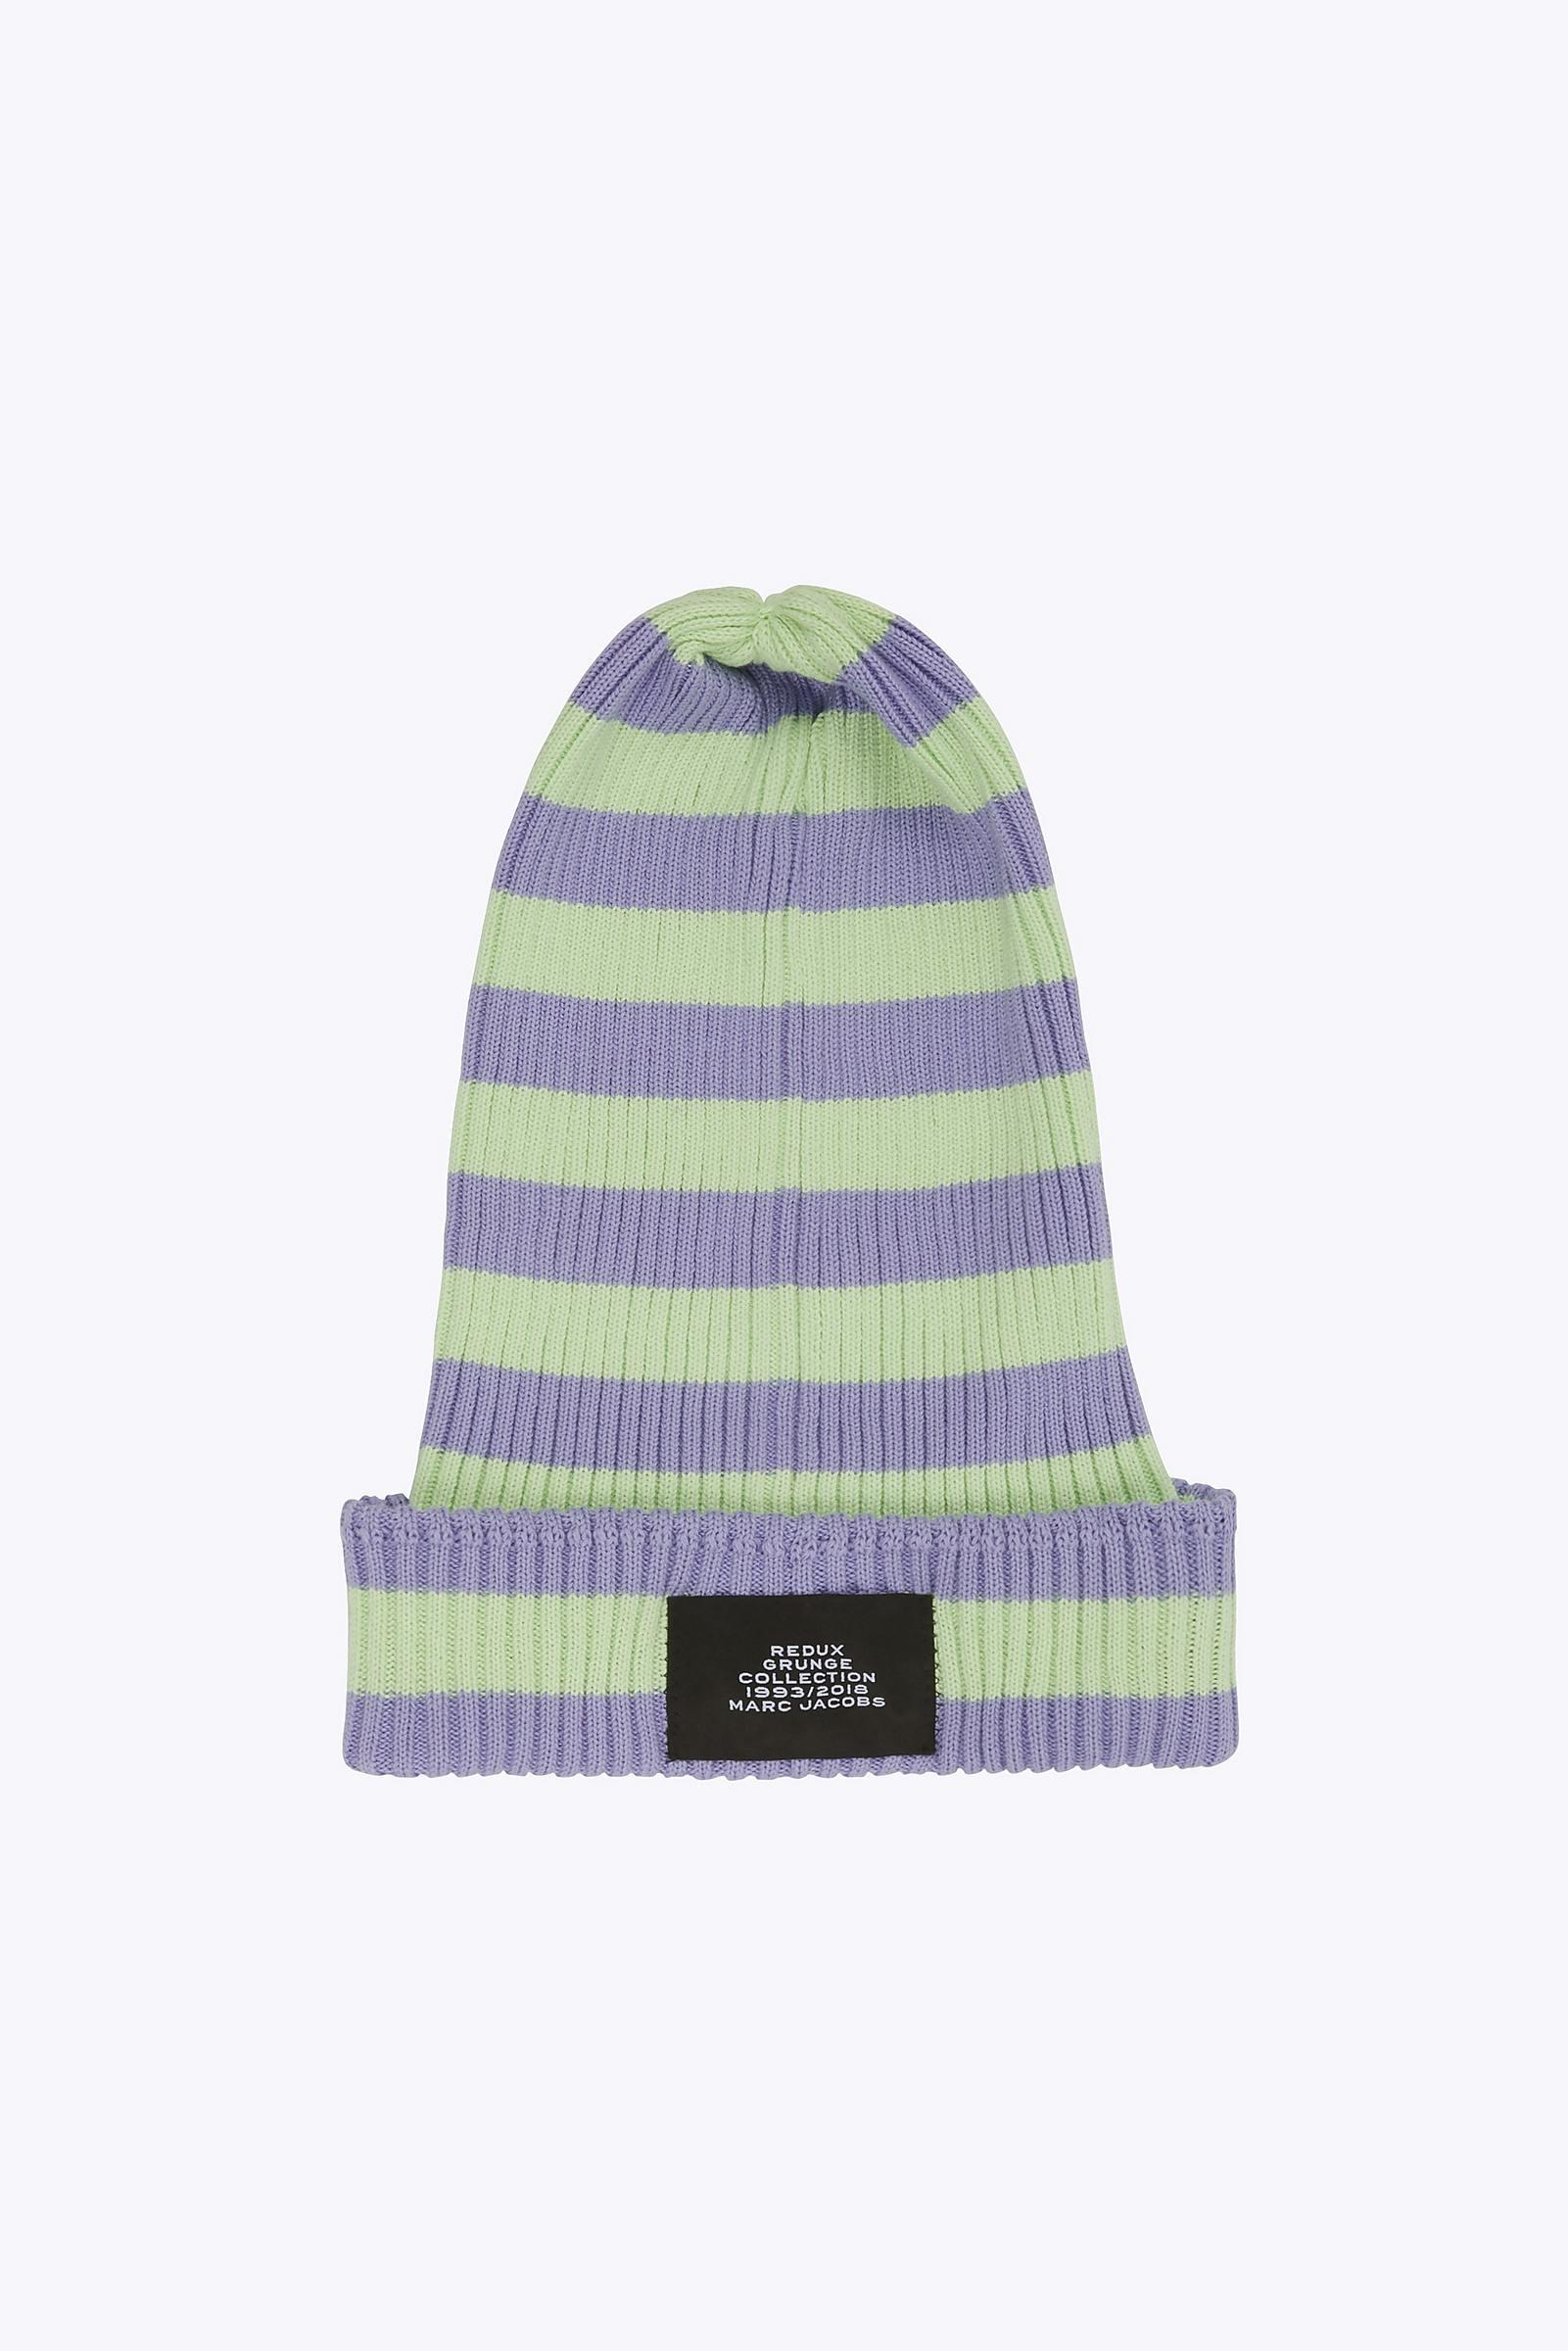 aeee8fdcae0 Marc Jacobs Thin-striped Knit Beanie - Save 23.15789473684211% - Lyst